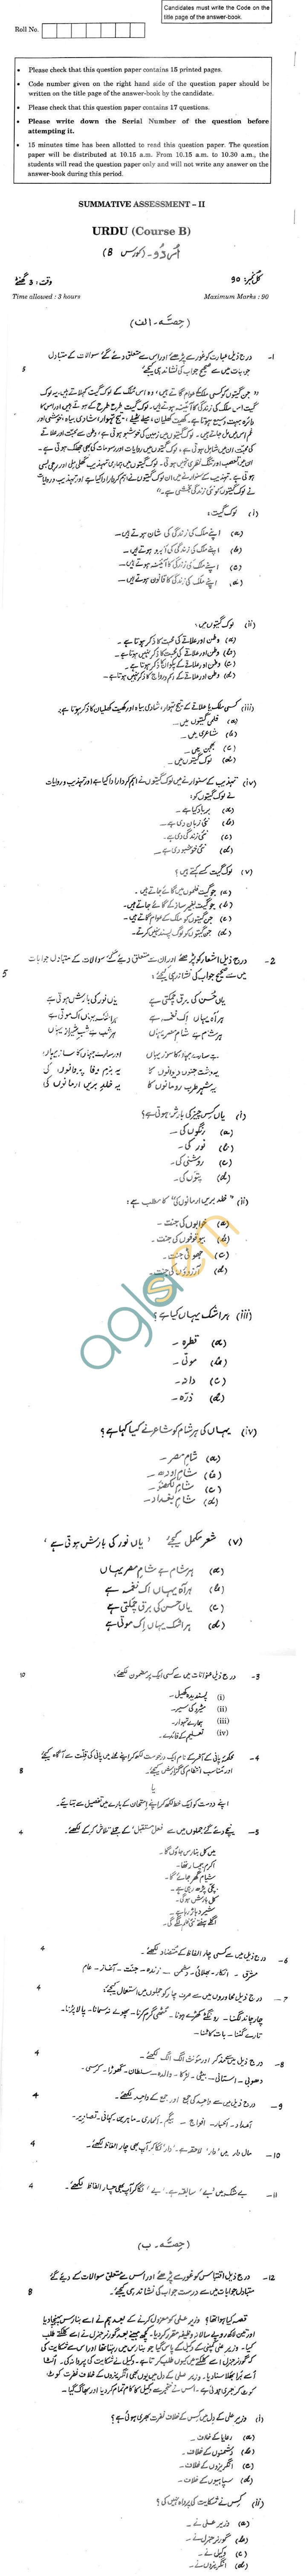 CBSE Compartment Exam 2013 Class X Question Paper - Urdu (Course B)